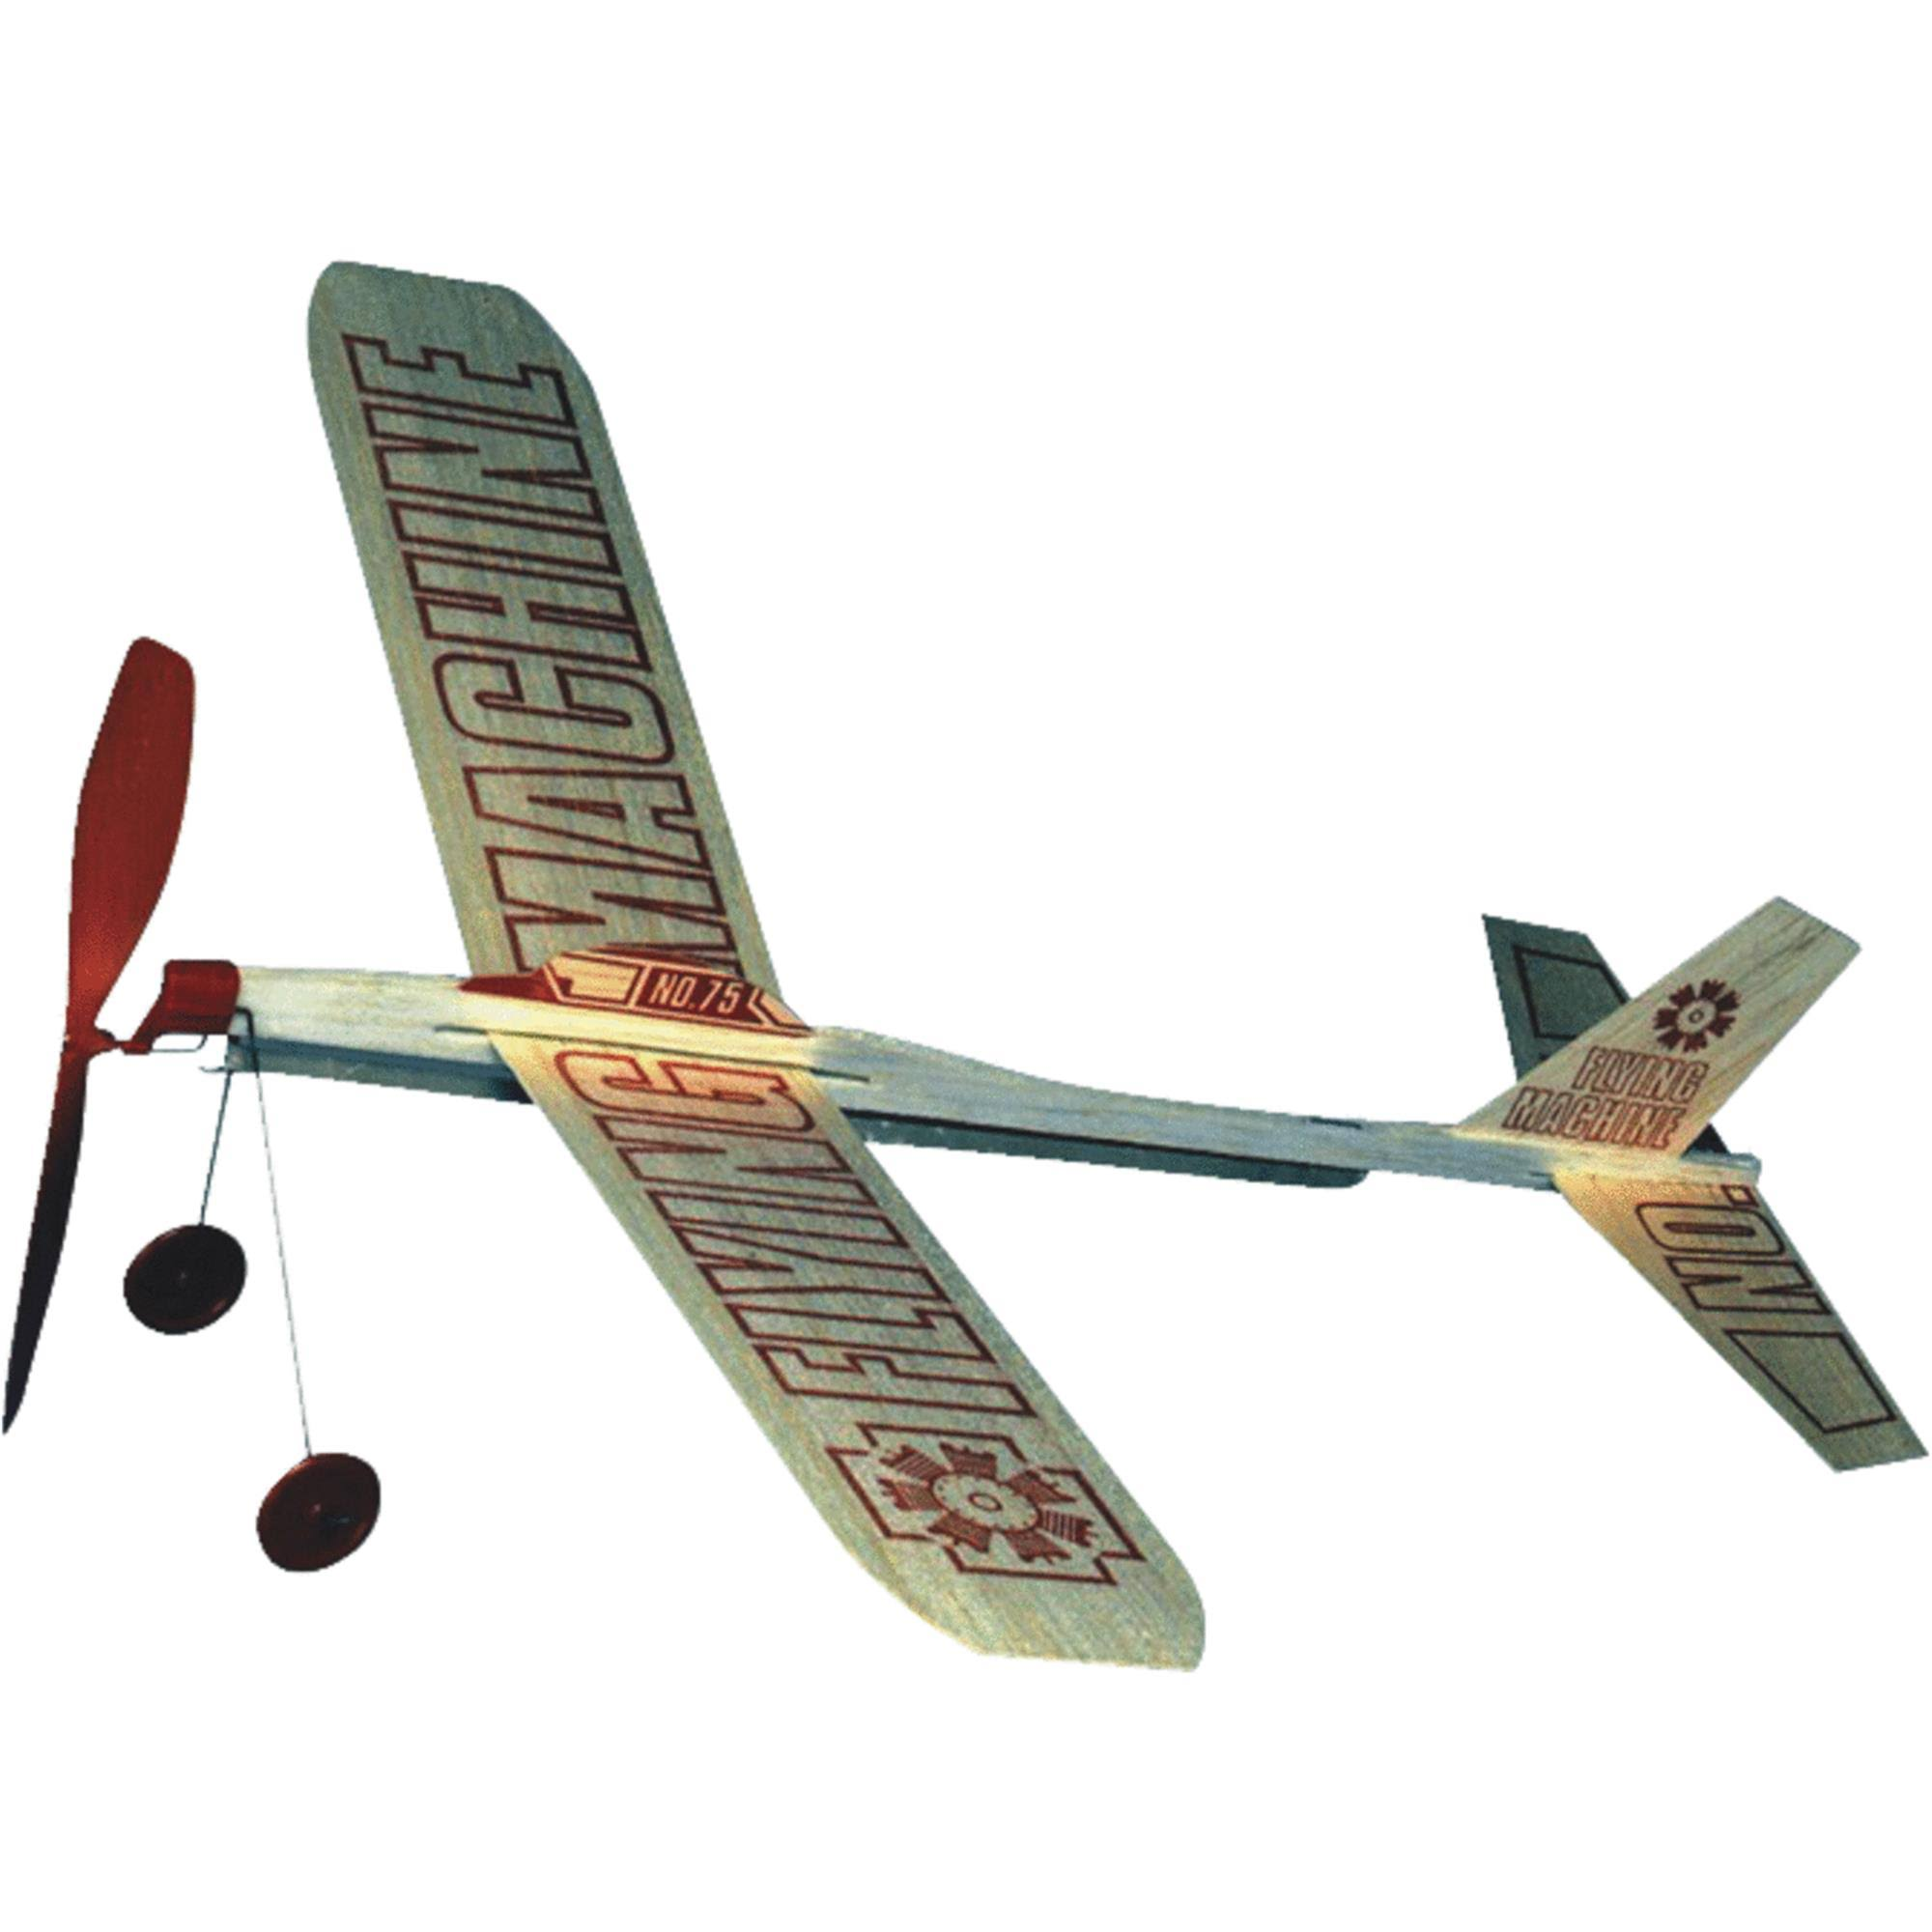 Guillow's Balsa Flying Machine - Wood